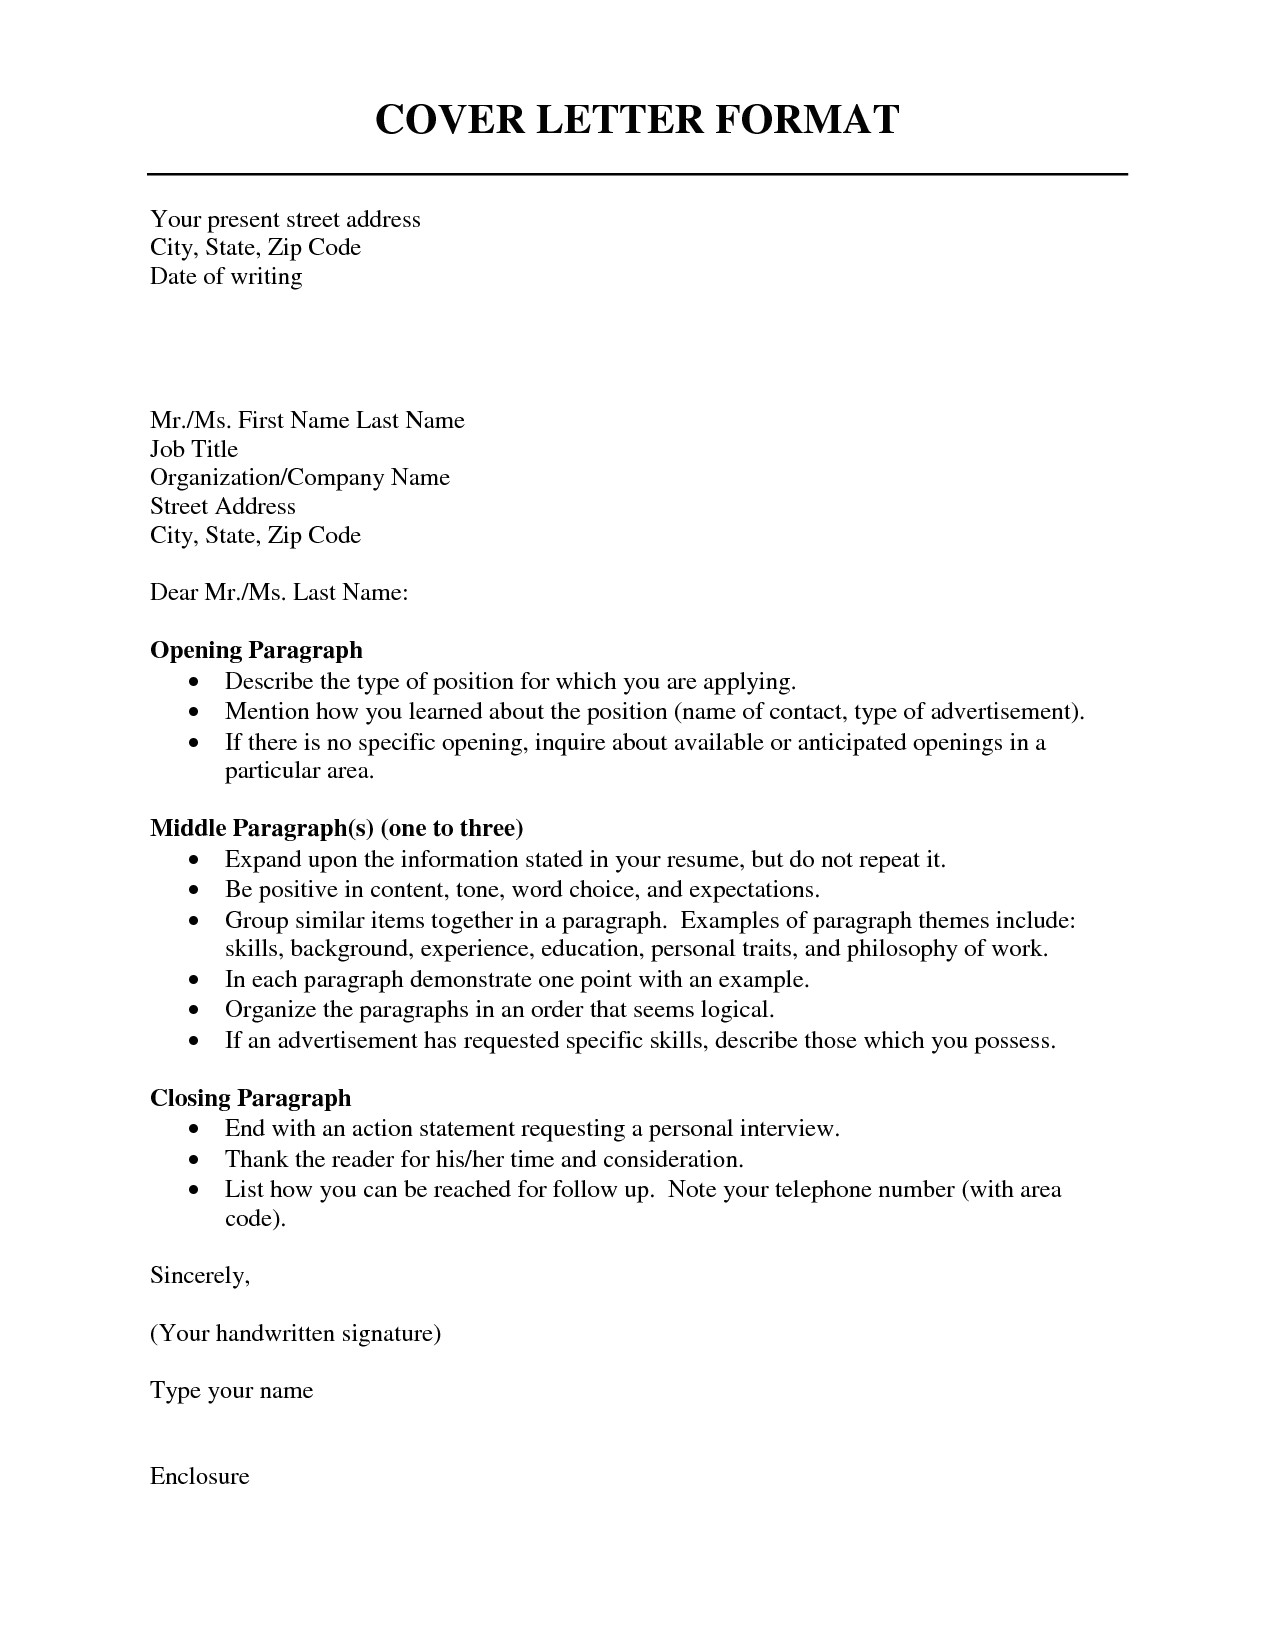 formatting for cover letter